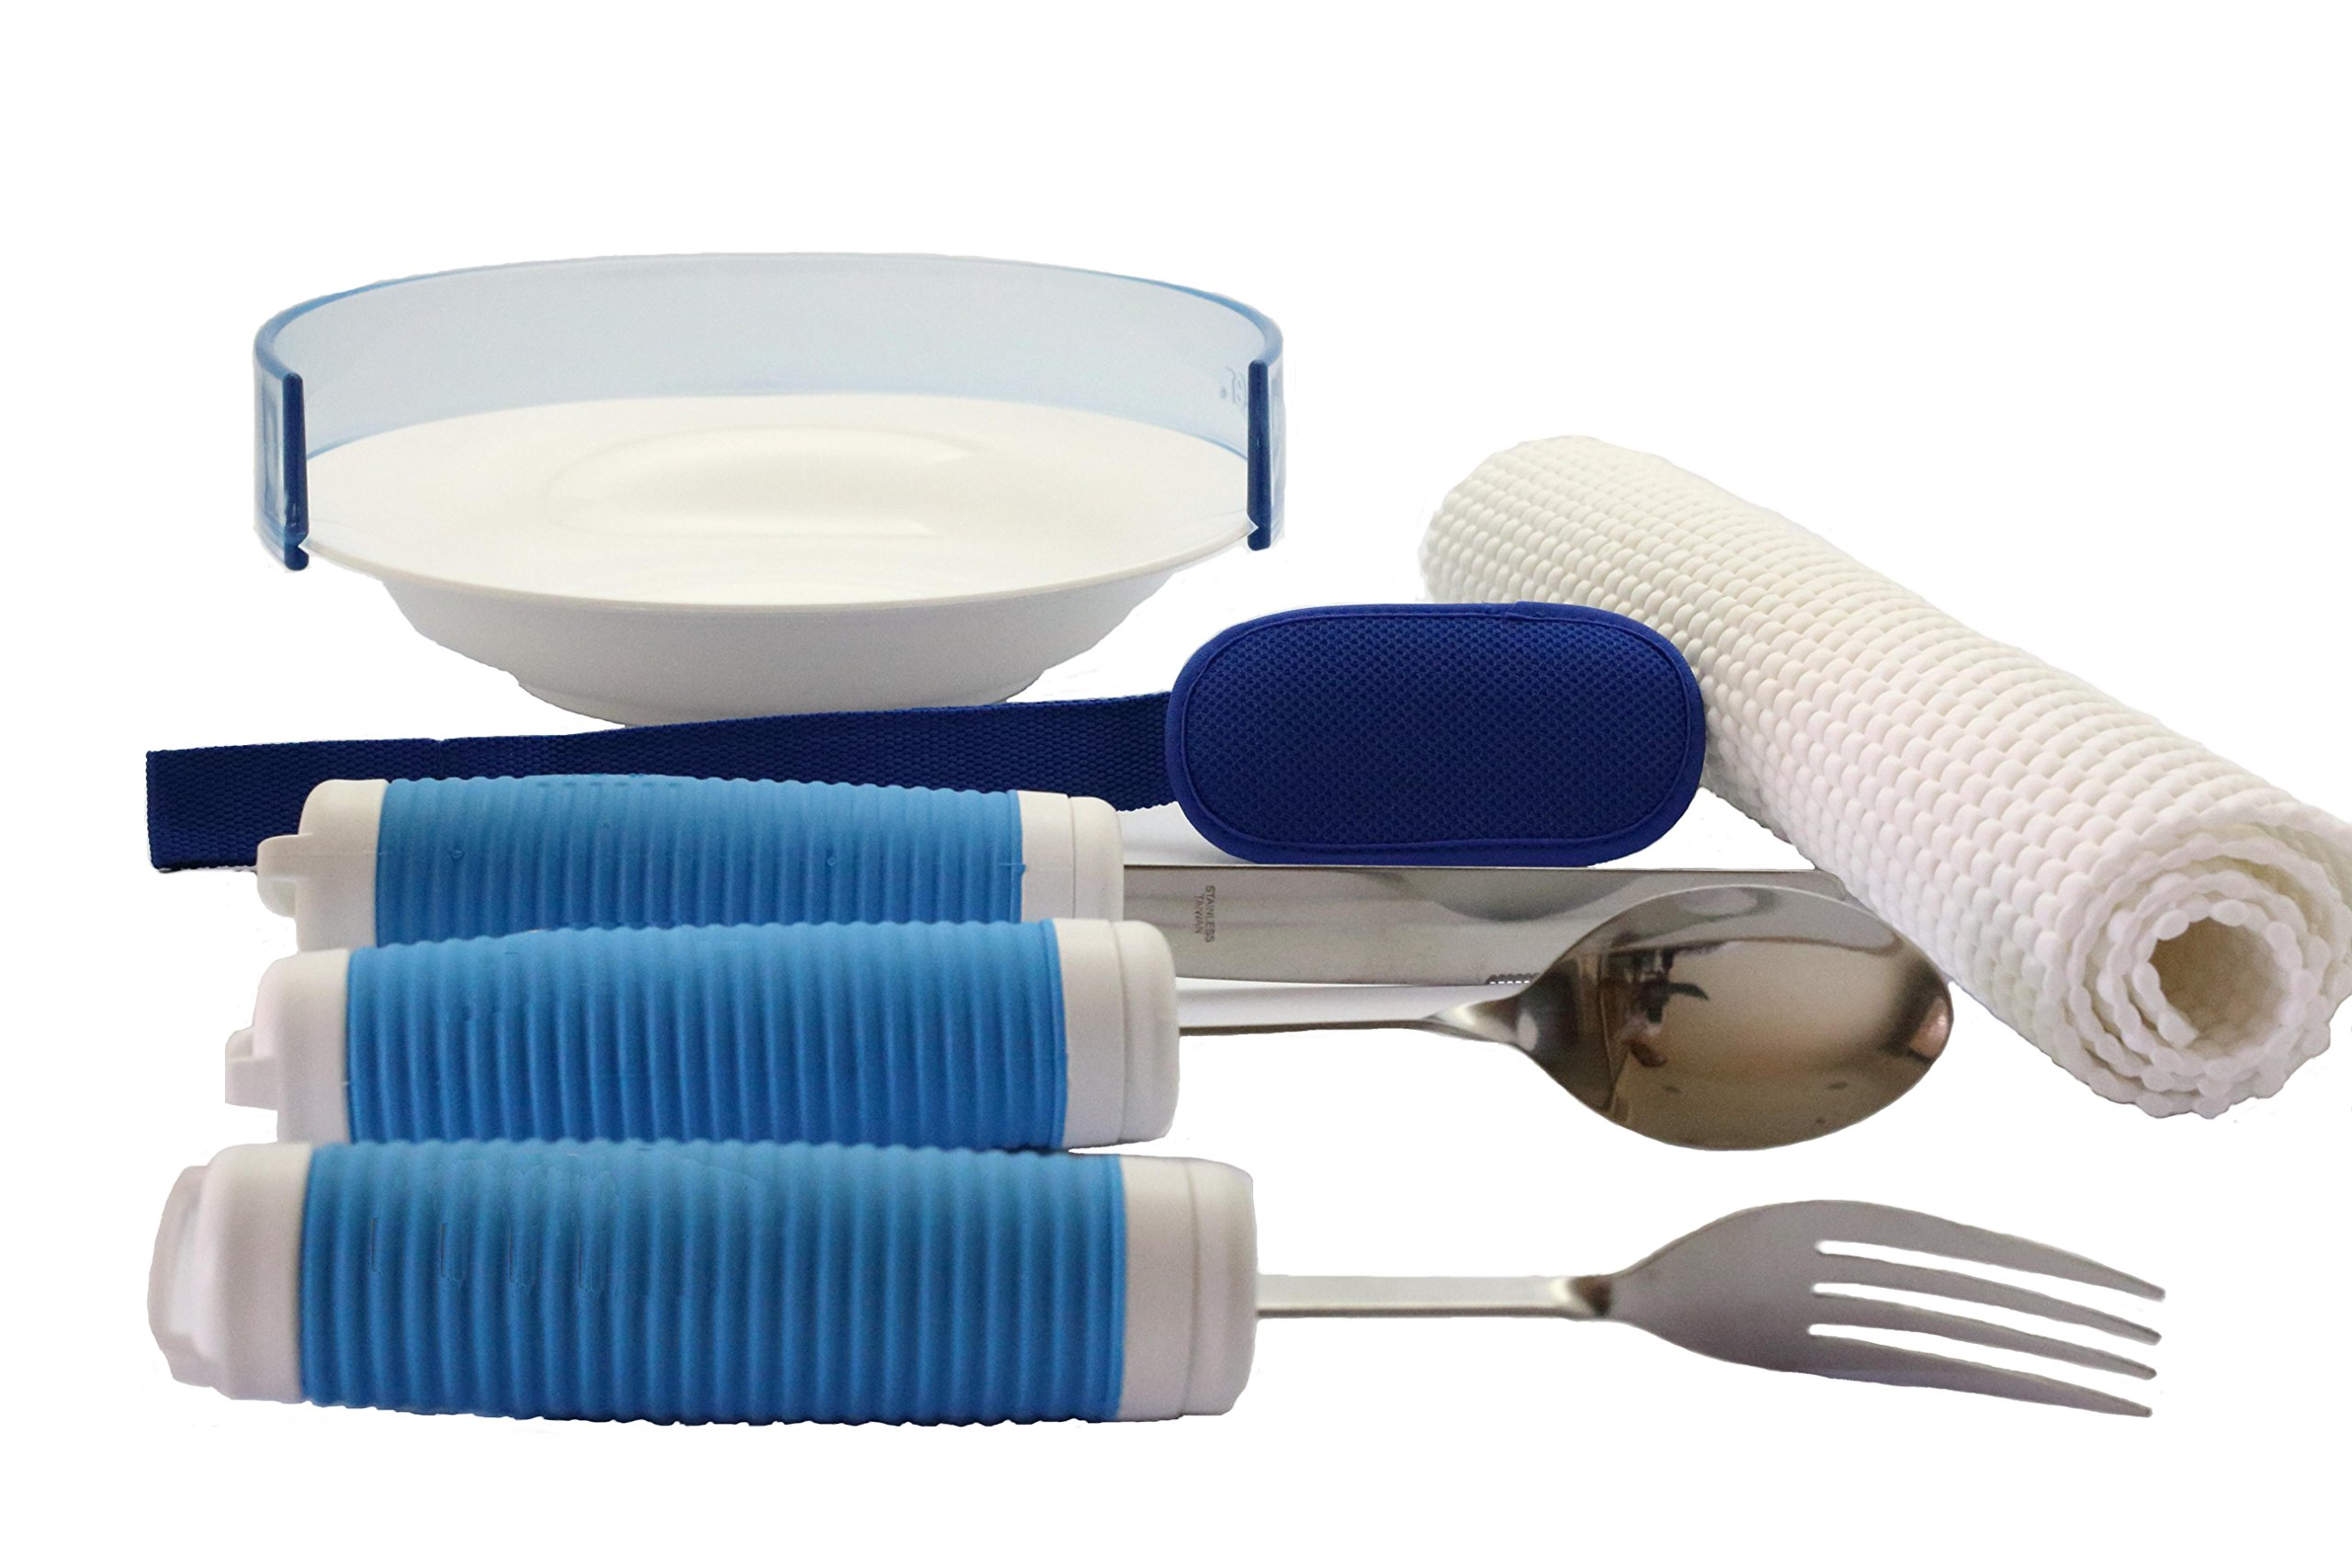 Daffo Green Adjustable Bendable Handle Eating Utensil Set Aid with Plate & Food Guard for Parkinson, Elderly, Disabilities